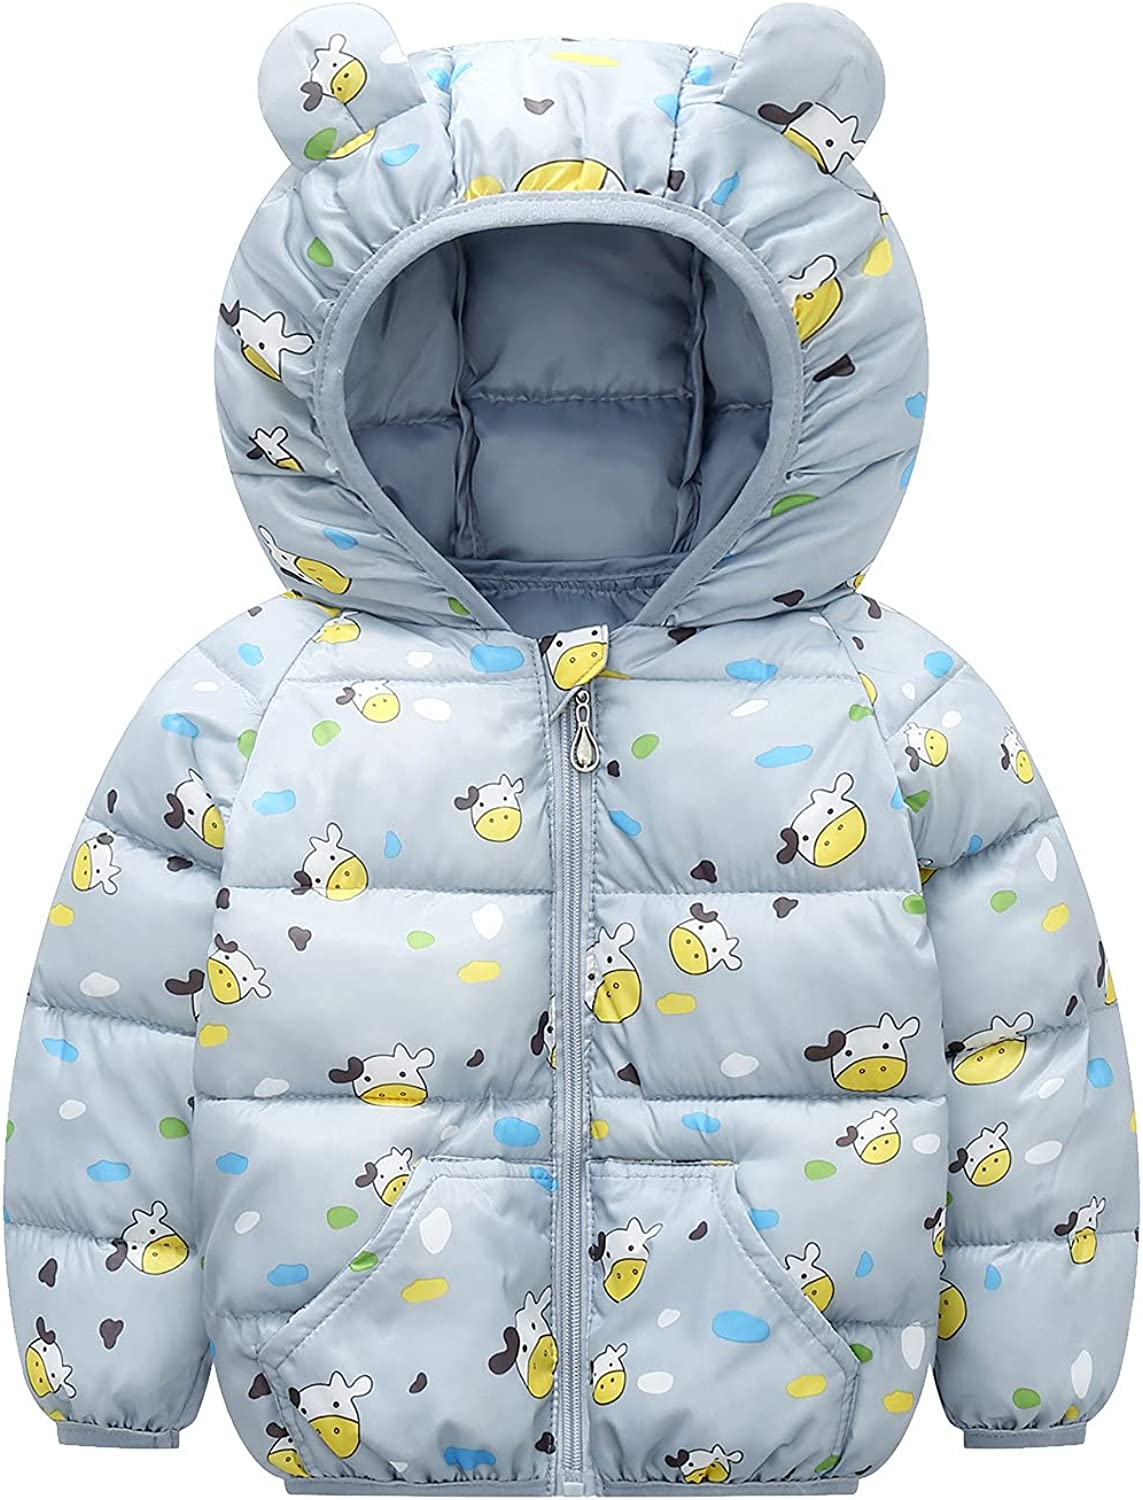 At the price Kids Baby Super beauty product restock quality top Boys Girls Winter Coats Puffer Hoodies Padded Jacket w